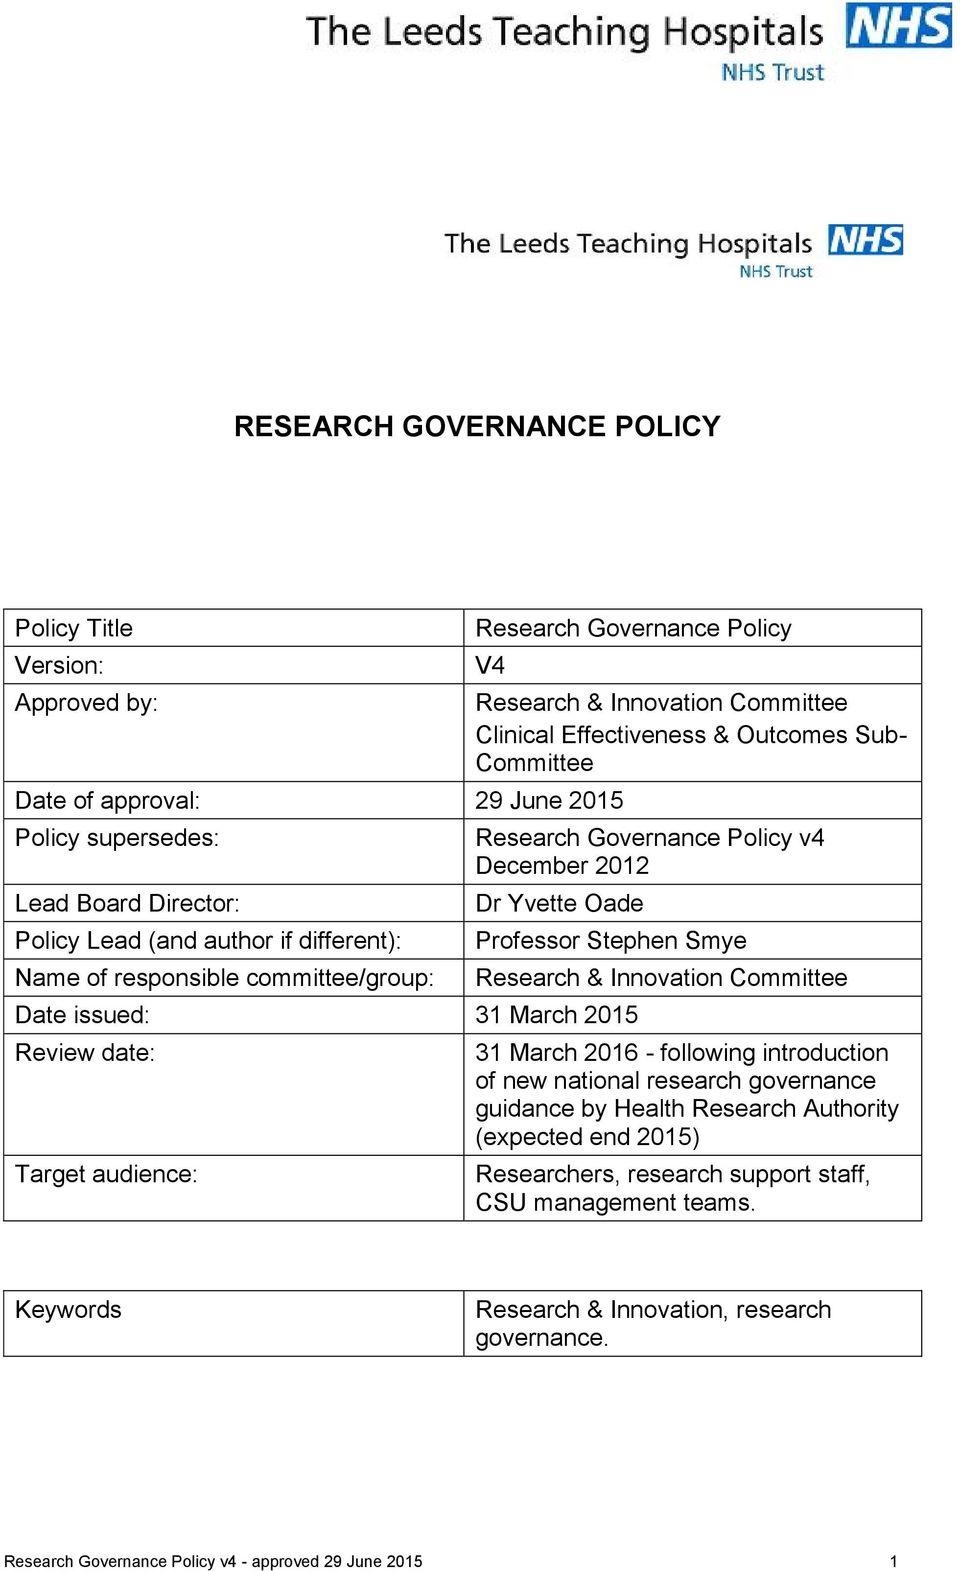 Stephen Smye Date issued: 31 March 2015 Review date: Target audience: Research & Innovation Committee 31 March 2016 - following introduction of new national research governance guidance by Health